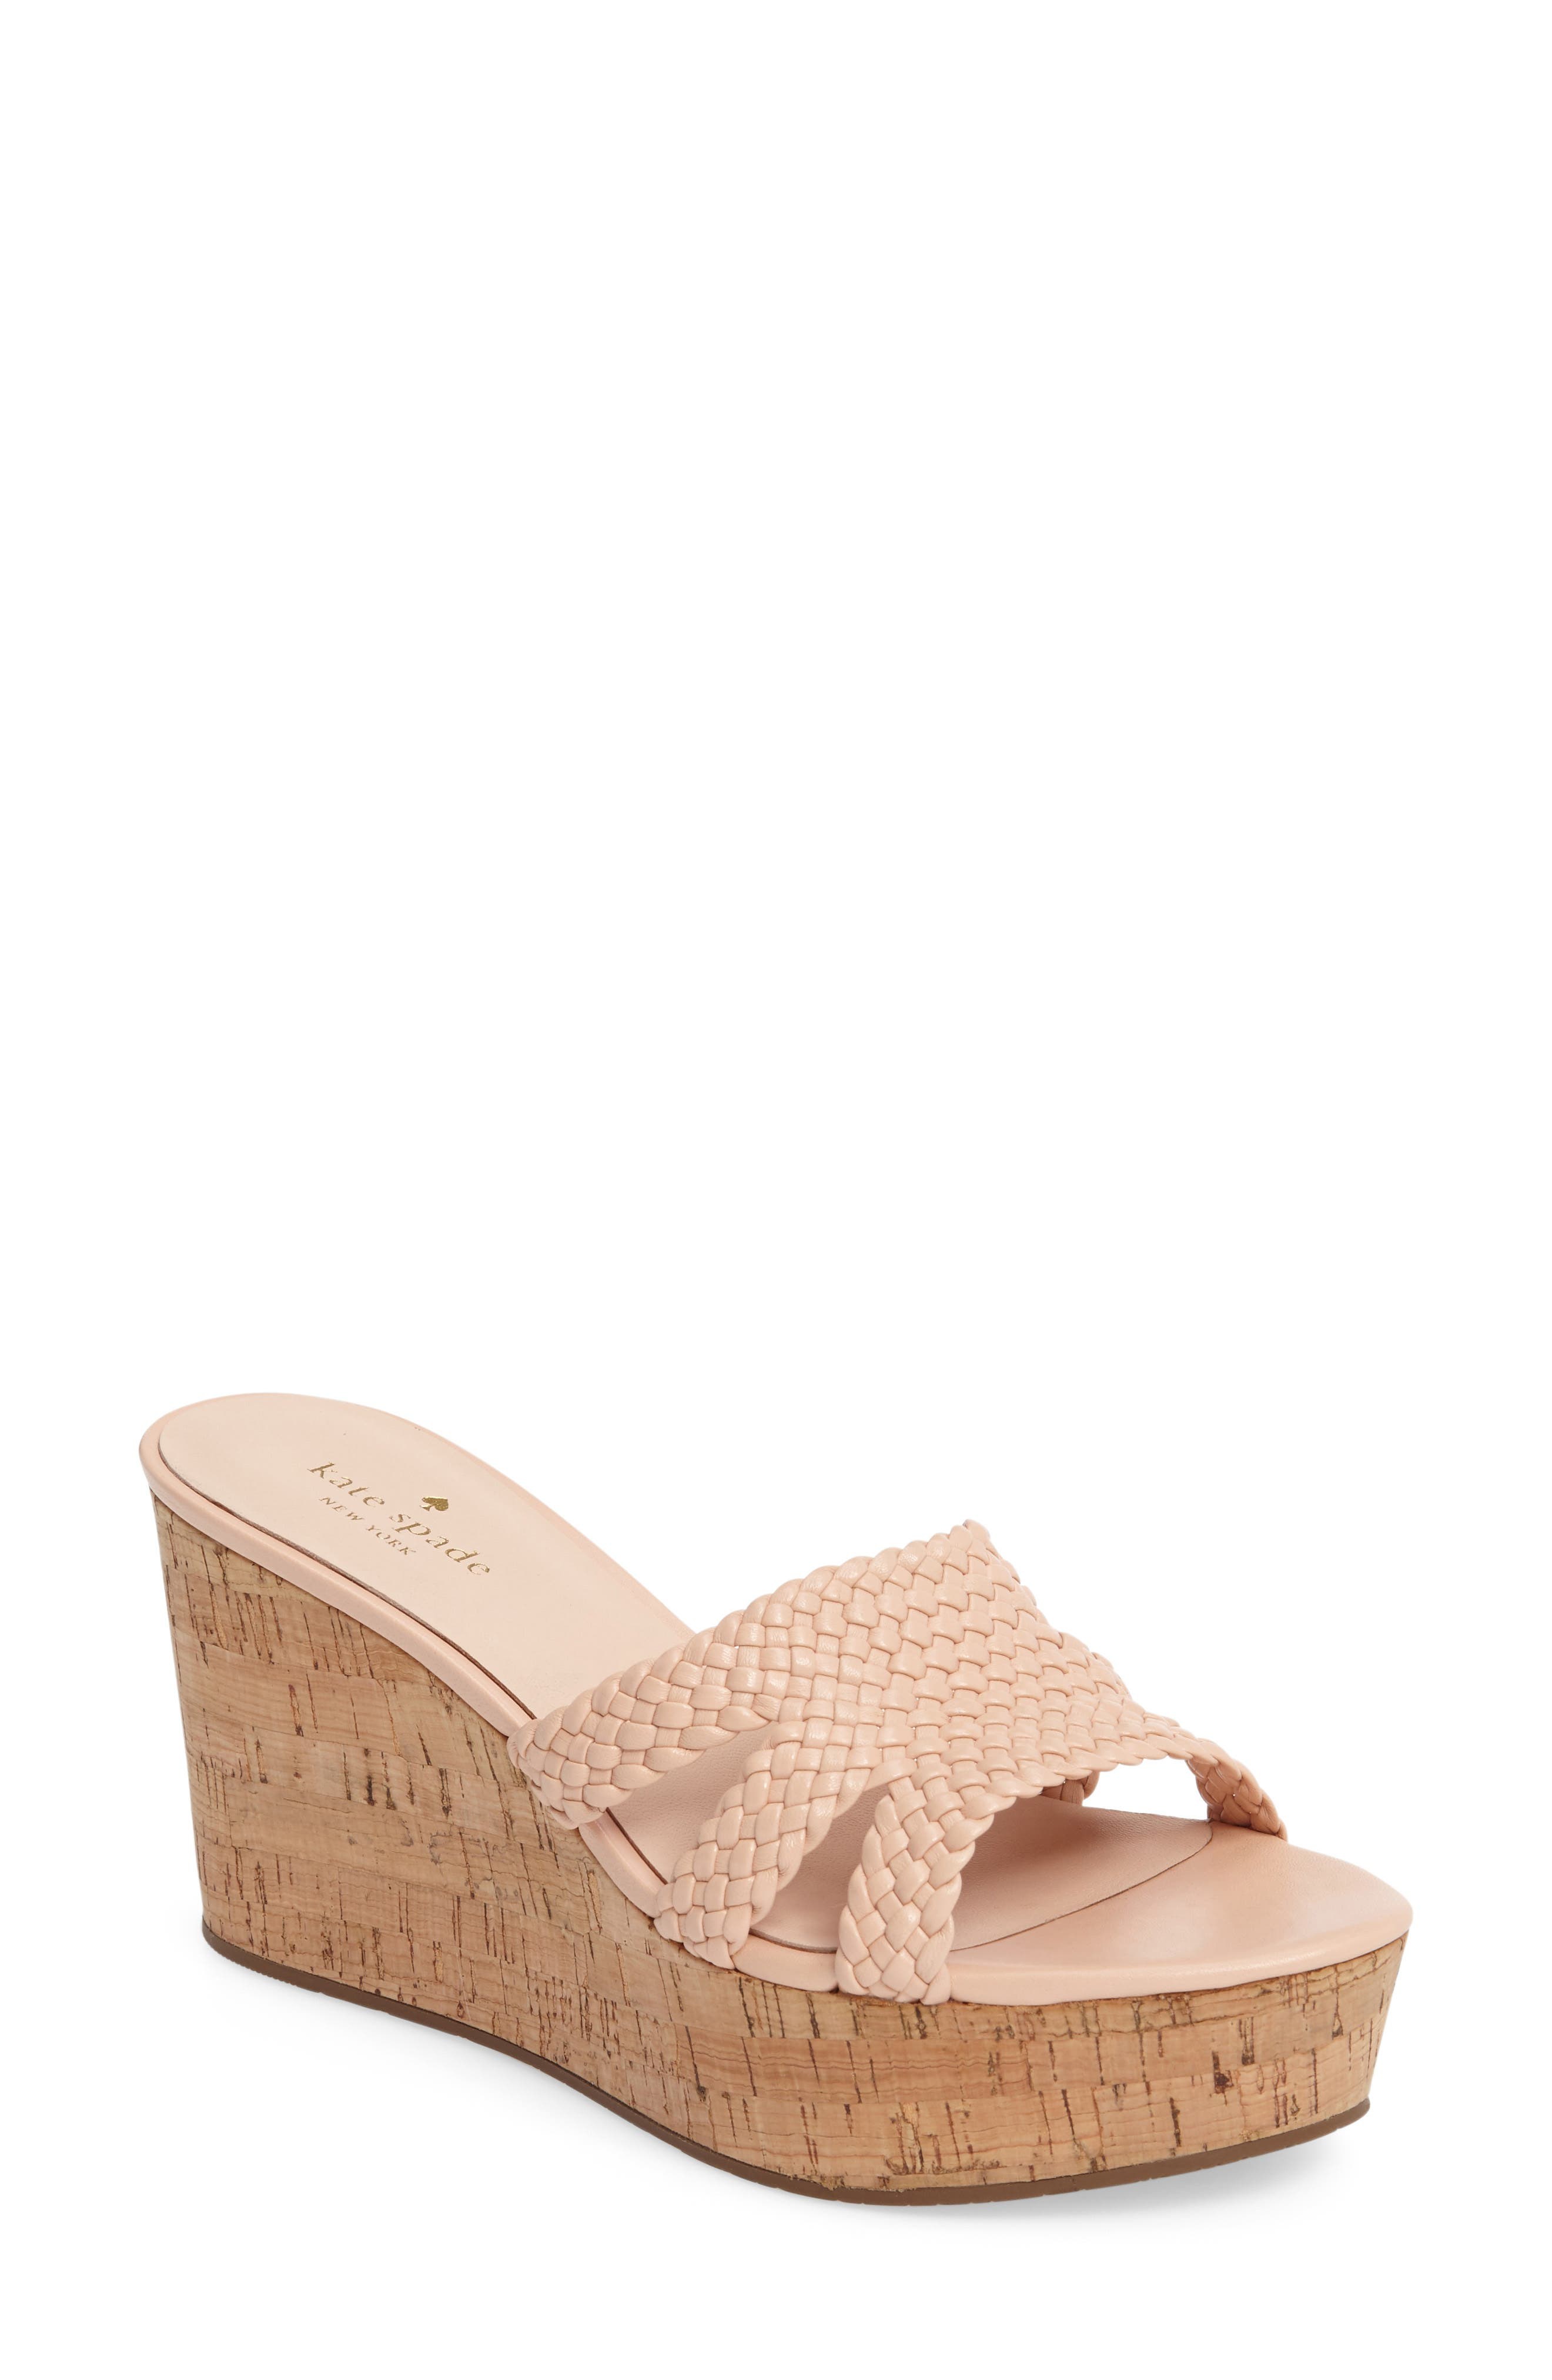 tarvela wedge sandal,                             Main thumbnail 1, color,                             661